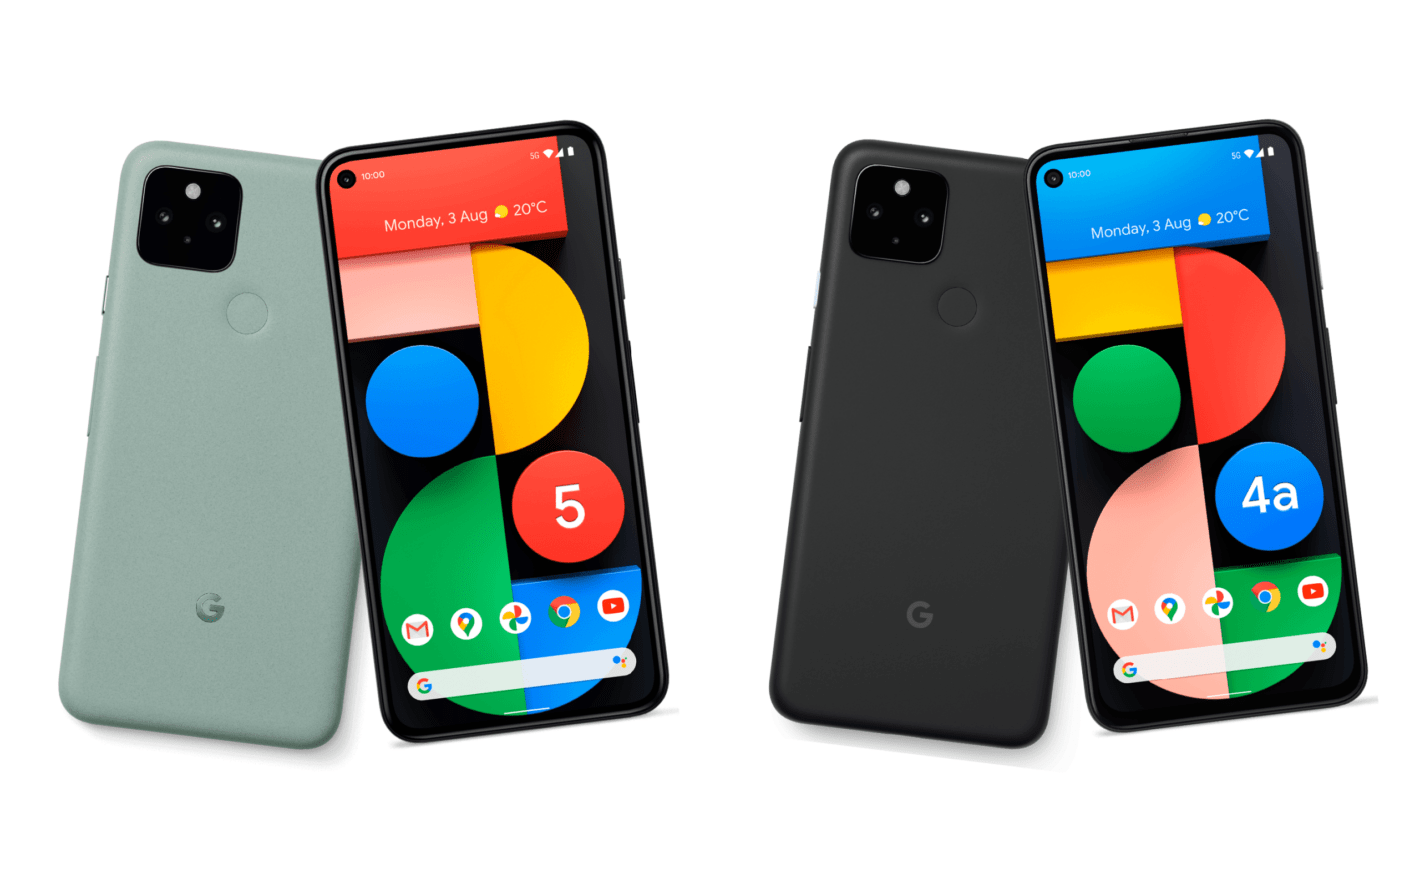 Pixel 4a 5G and Pixel 5 get listed in Europe, reveals key details - MSPoweruser